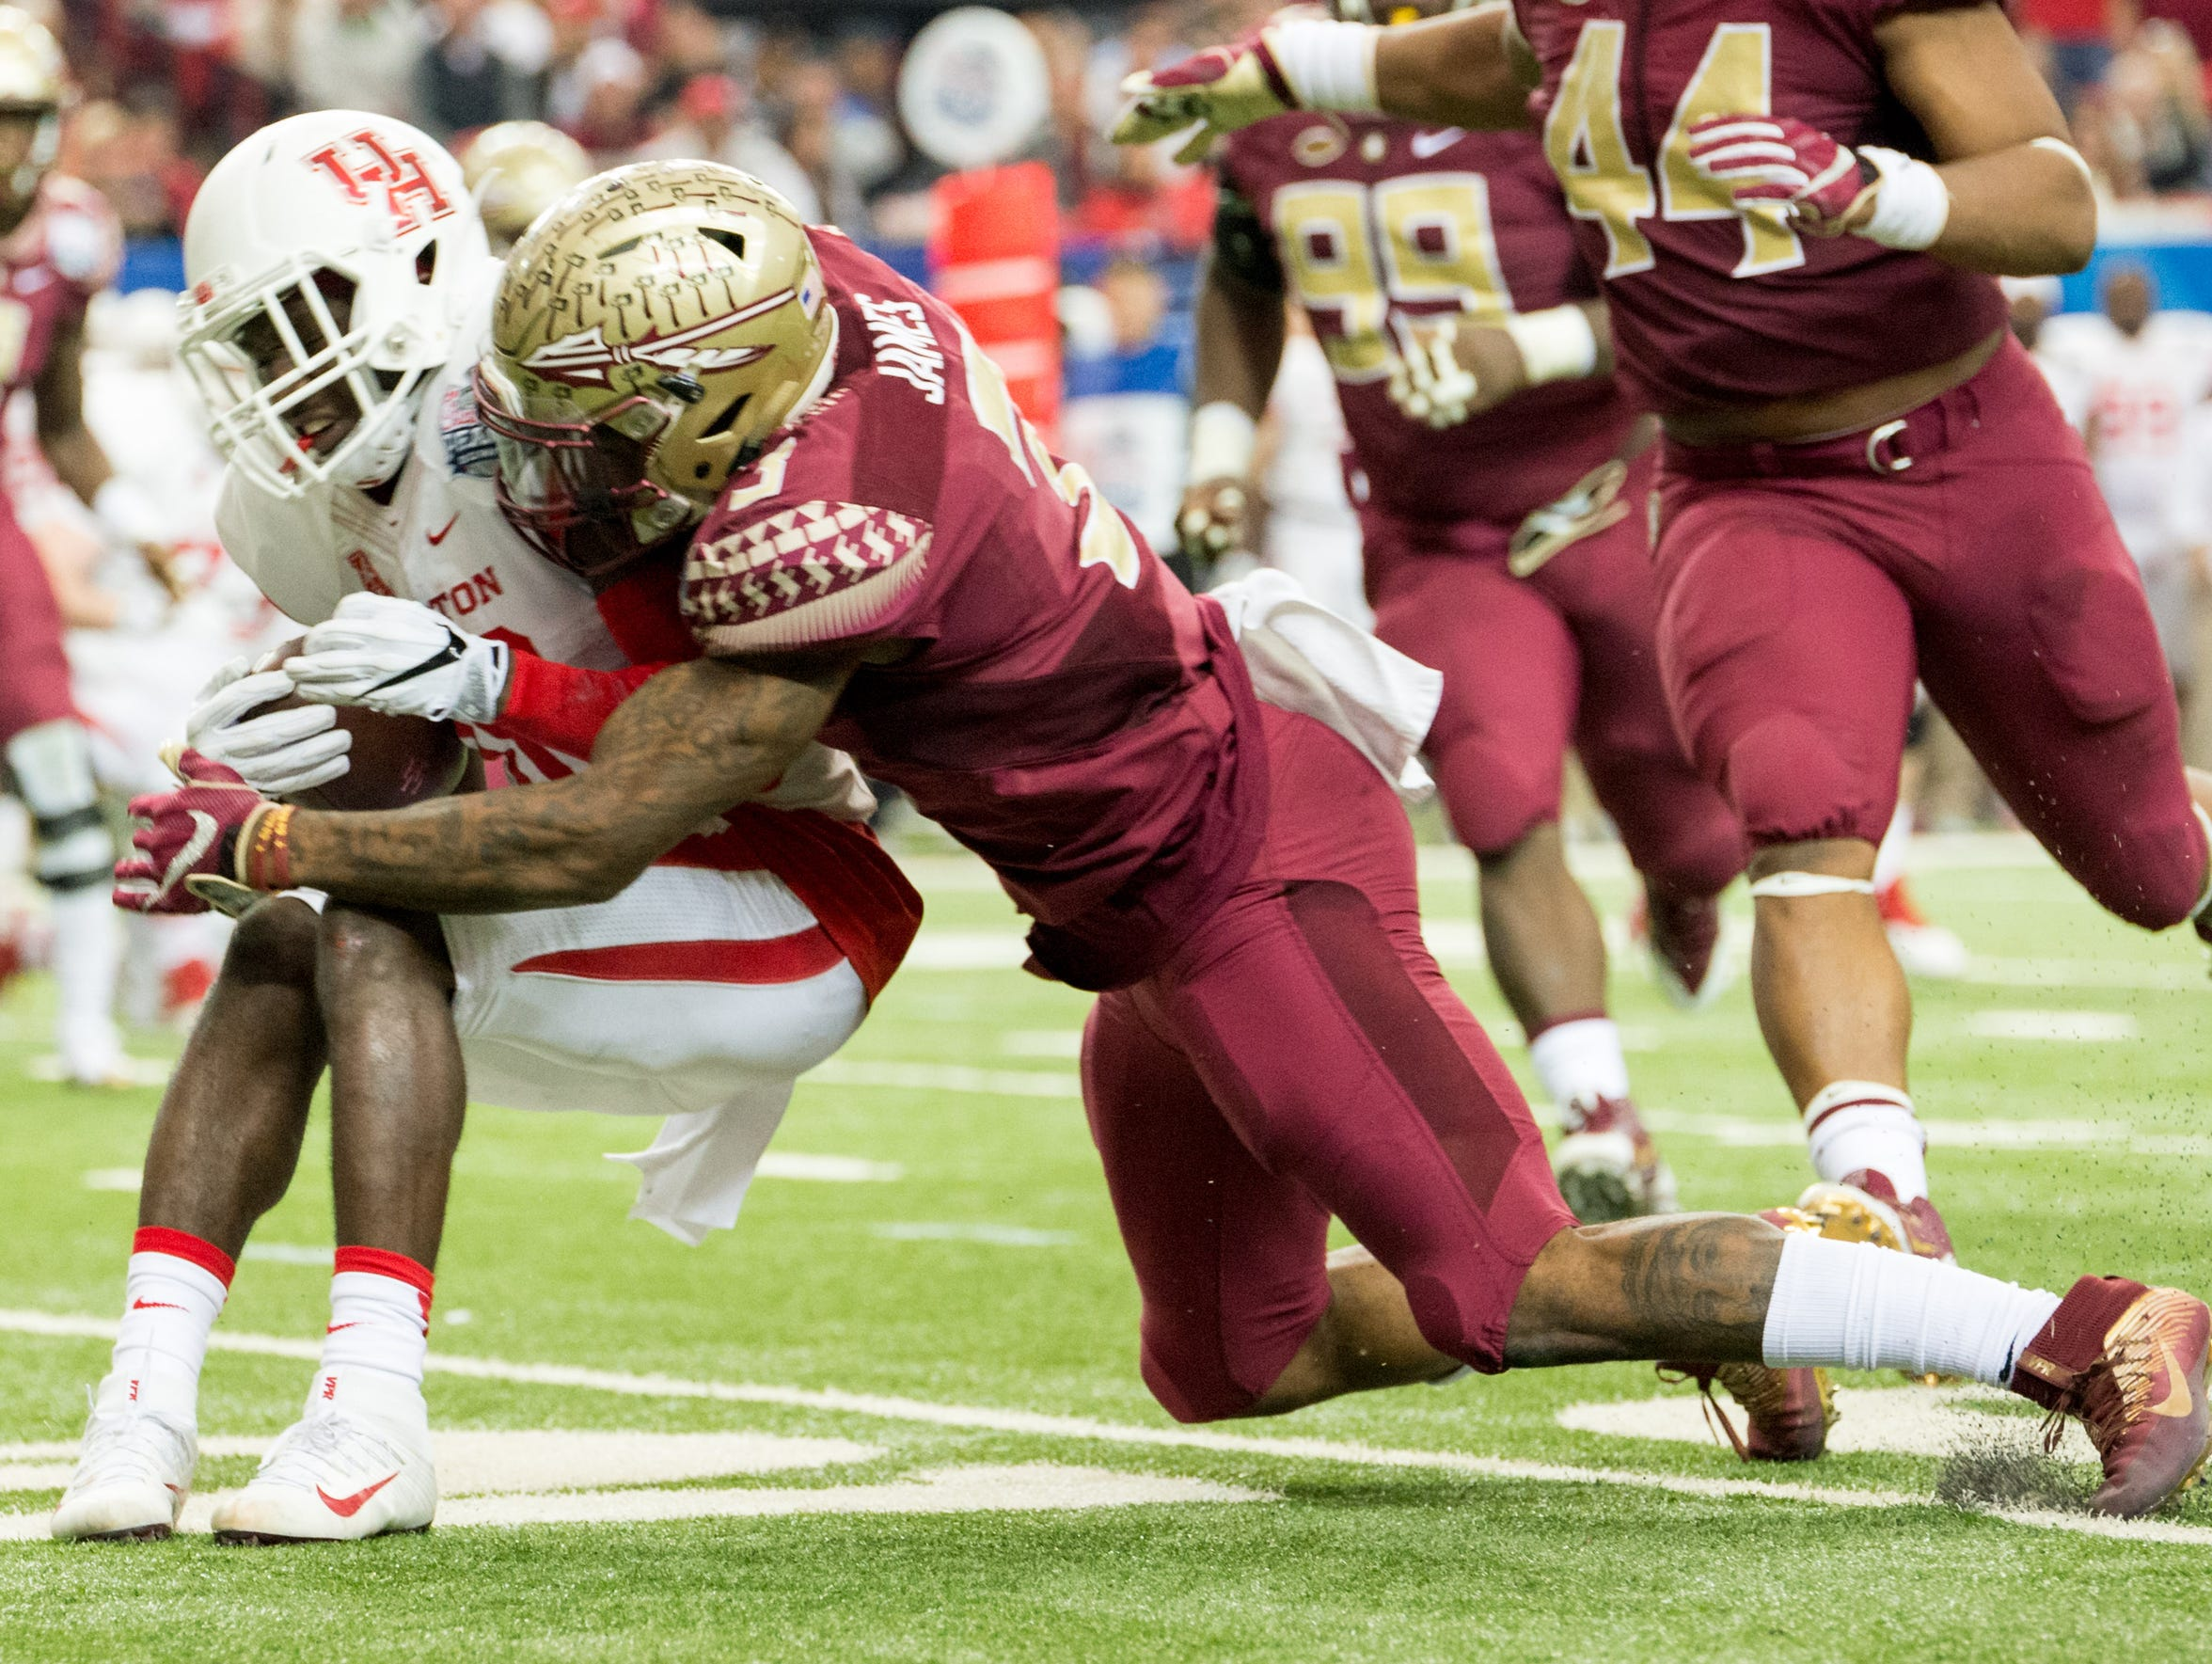 Derwin James makes a tackle during the Chick-Fil-A